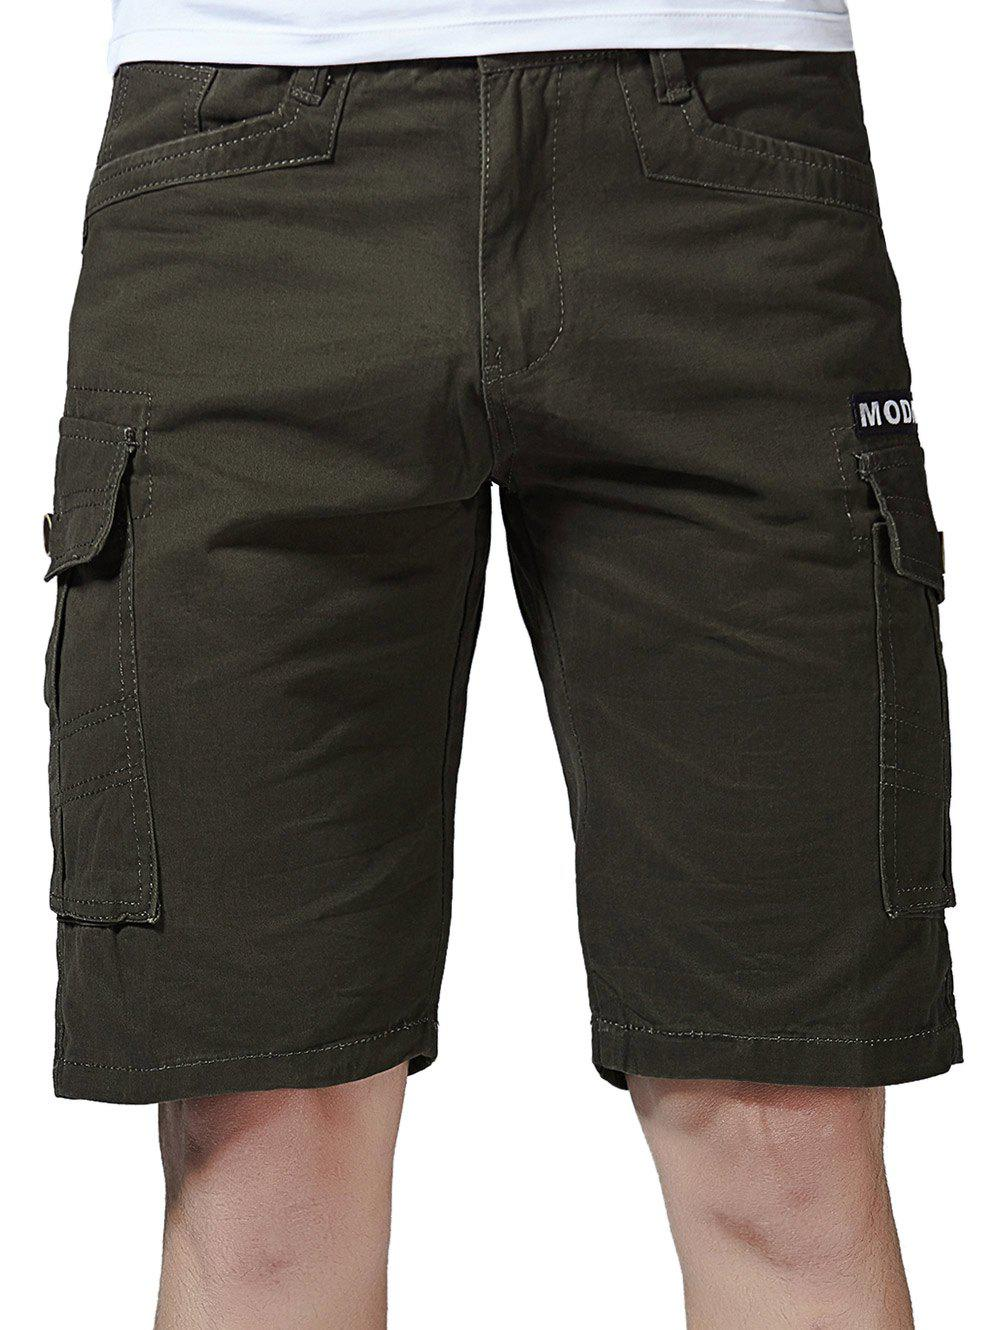 New Zip Fly Letter Print Flap Pockets Cargo Shorts